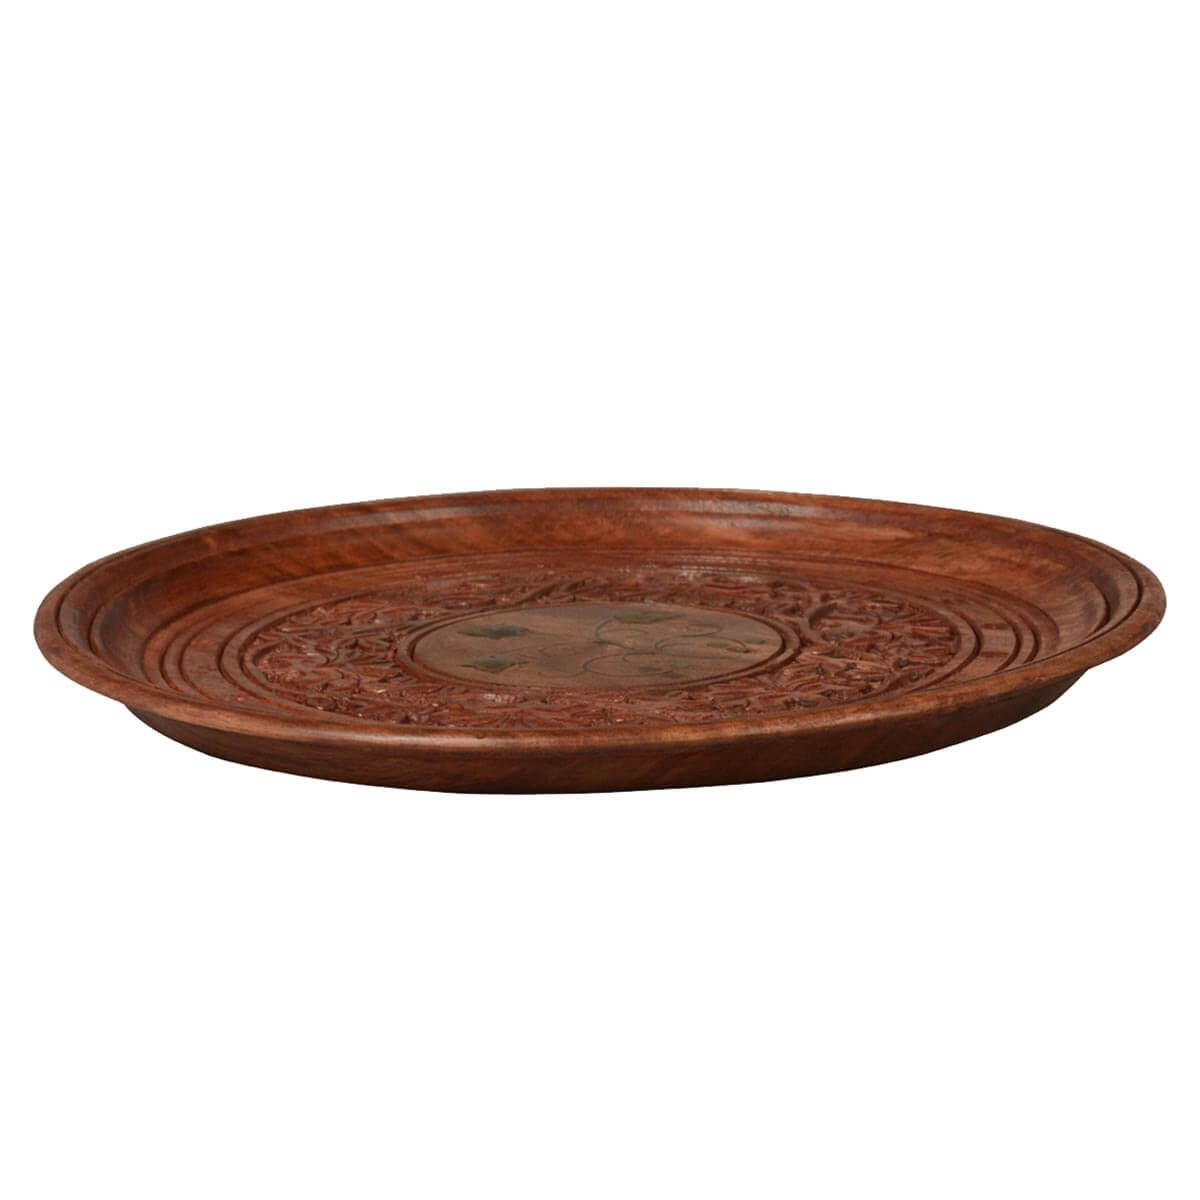 Twisted Vine Hand Carved Mango Wood   Round Wooden Serving Tray